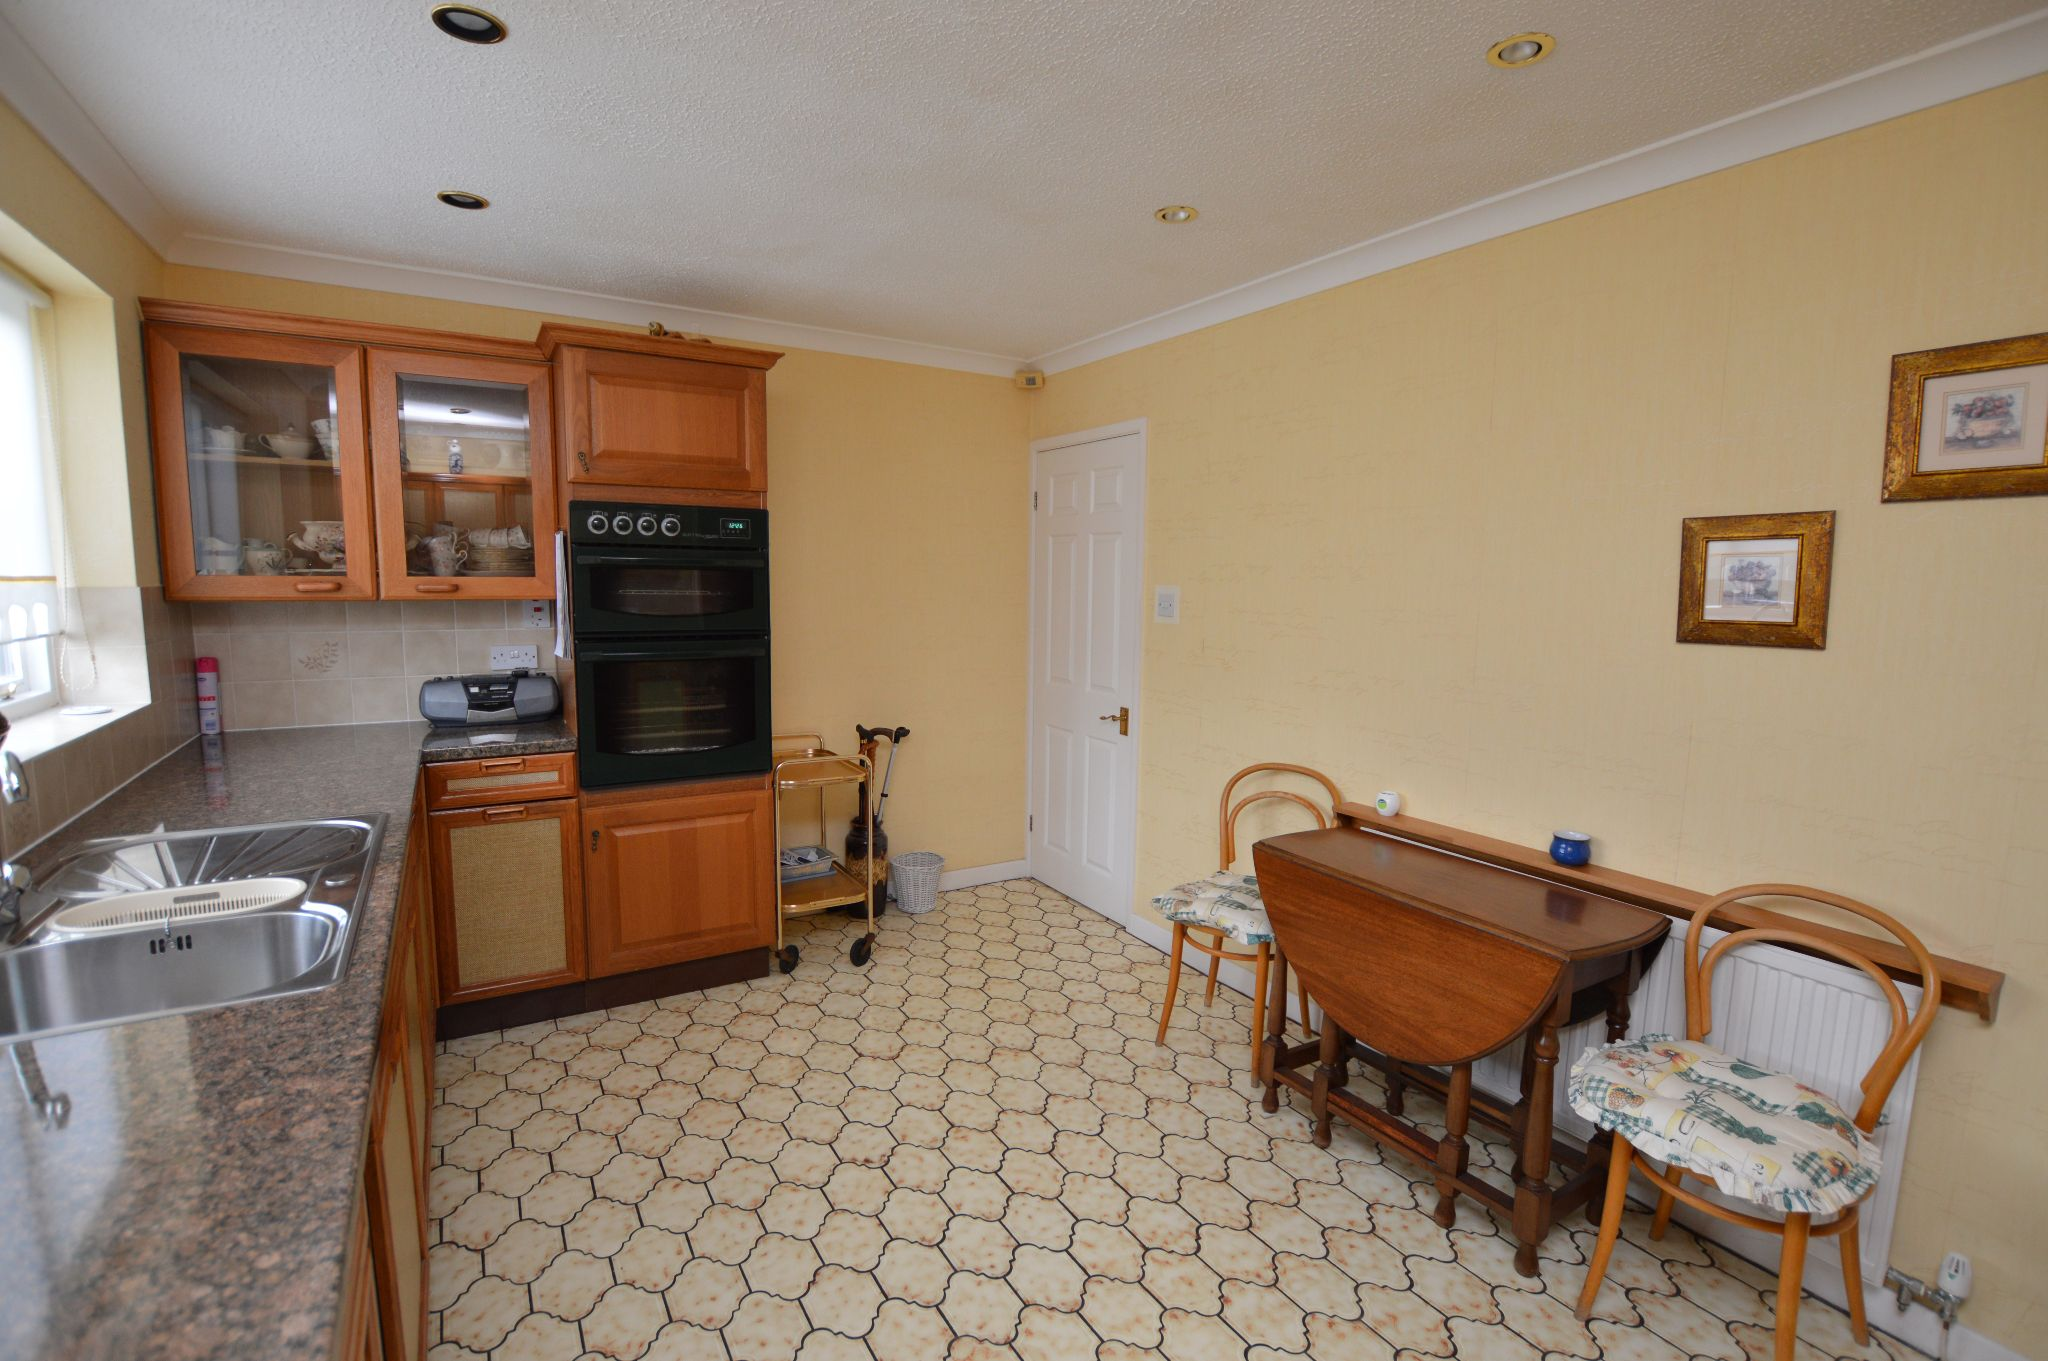 4 bedroom detached house For Sale in Abergele - Kitchen View 3